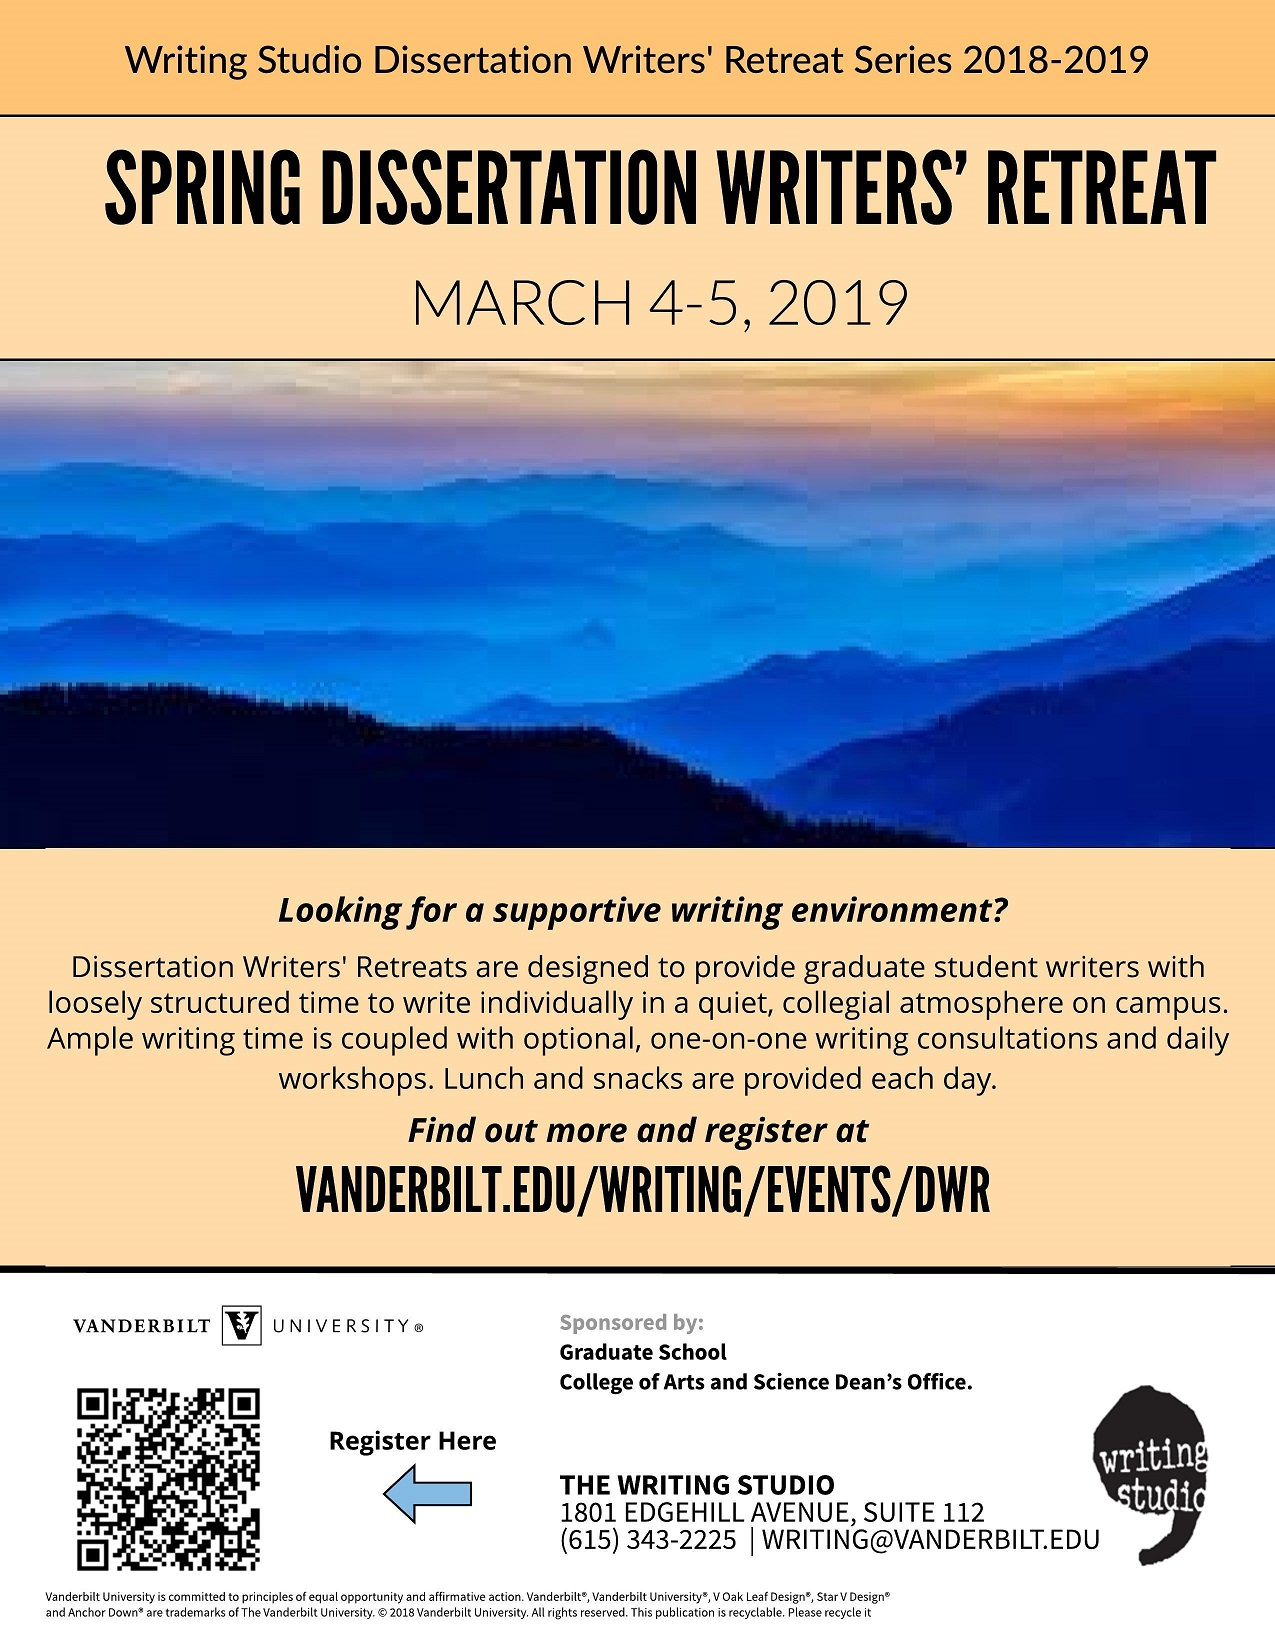 Capella dissertation writers retreat